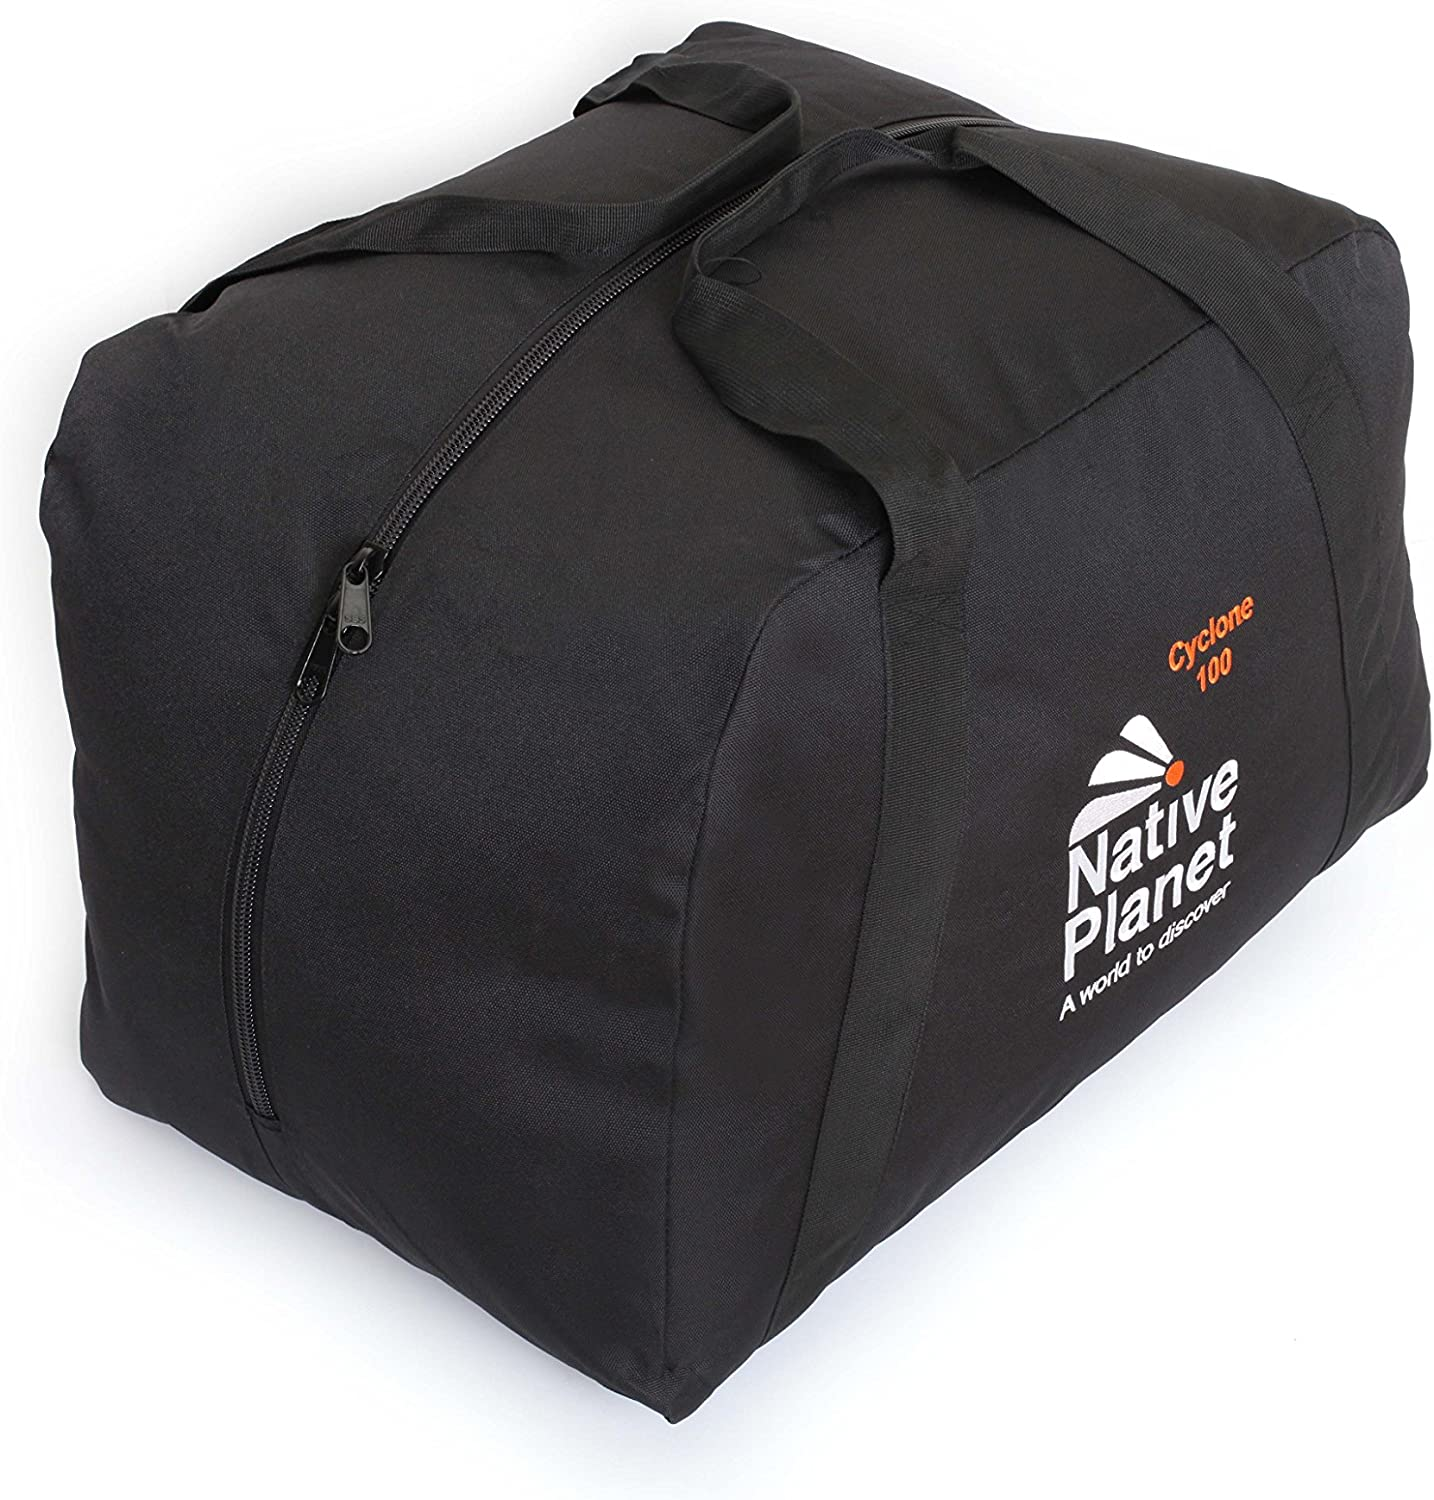 Native Planet Foldable Cyclone Travel Duffle Bag Highly Durable